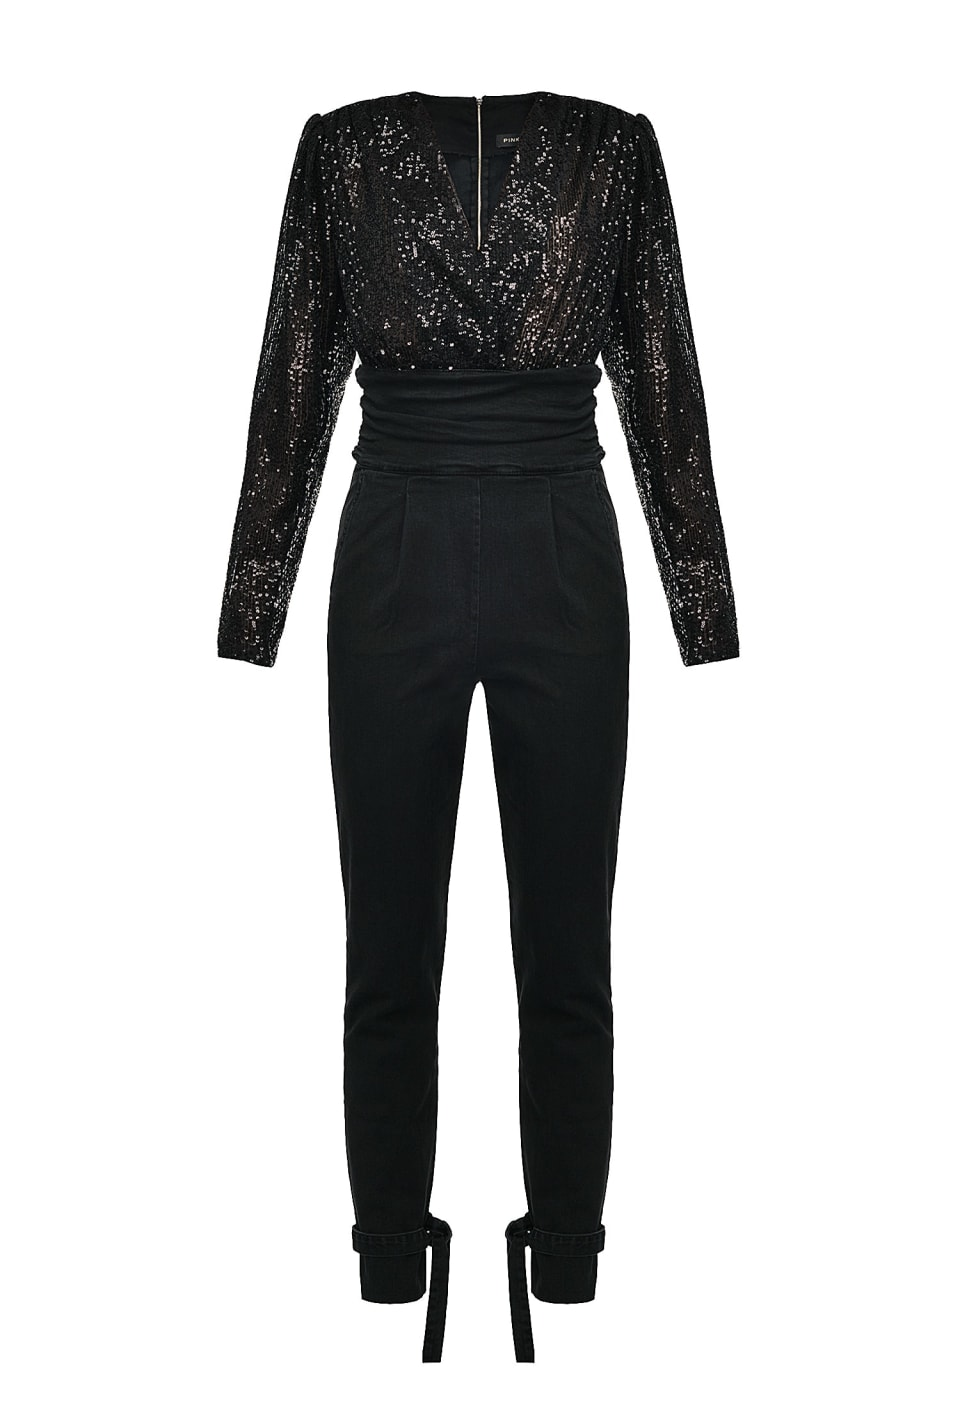 Jumpsuit in black comfort denim and sequins - Pinko